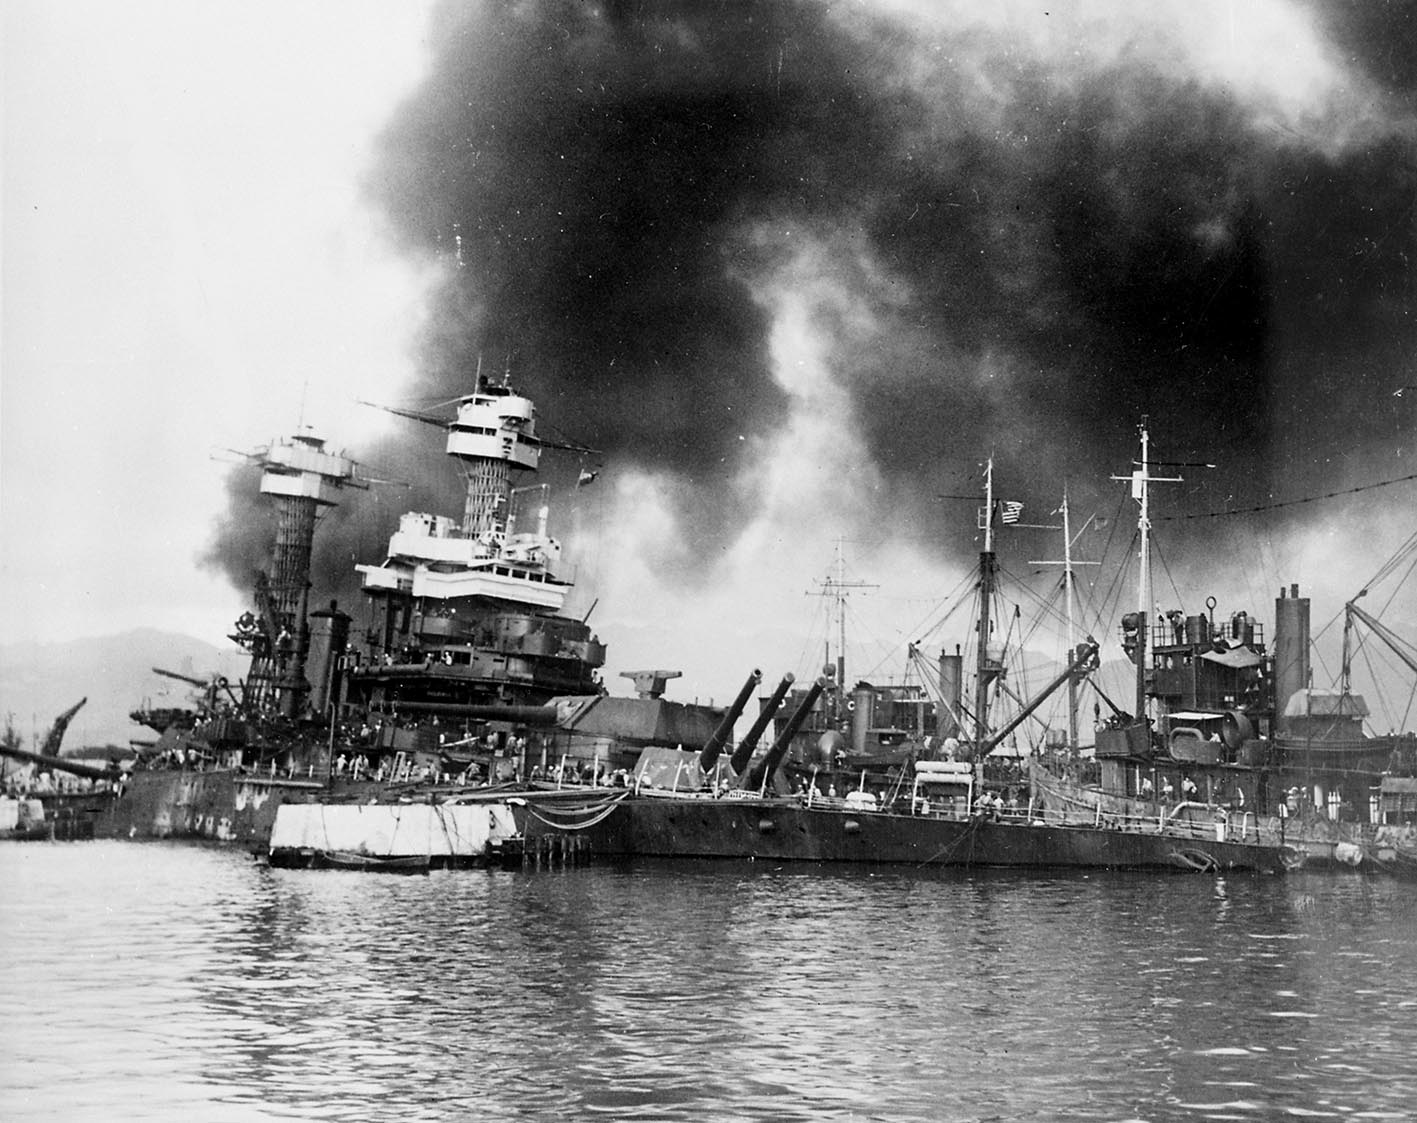 Click image for larger version.  Name:01.00. 3 4 1 2 USS California (BB-44) sinking at Pearl Harbor.jpg Views:4 Size:226.8 KB ID:2135786